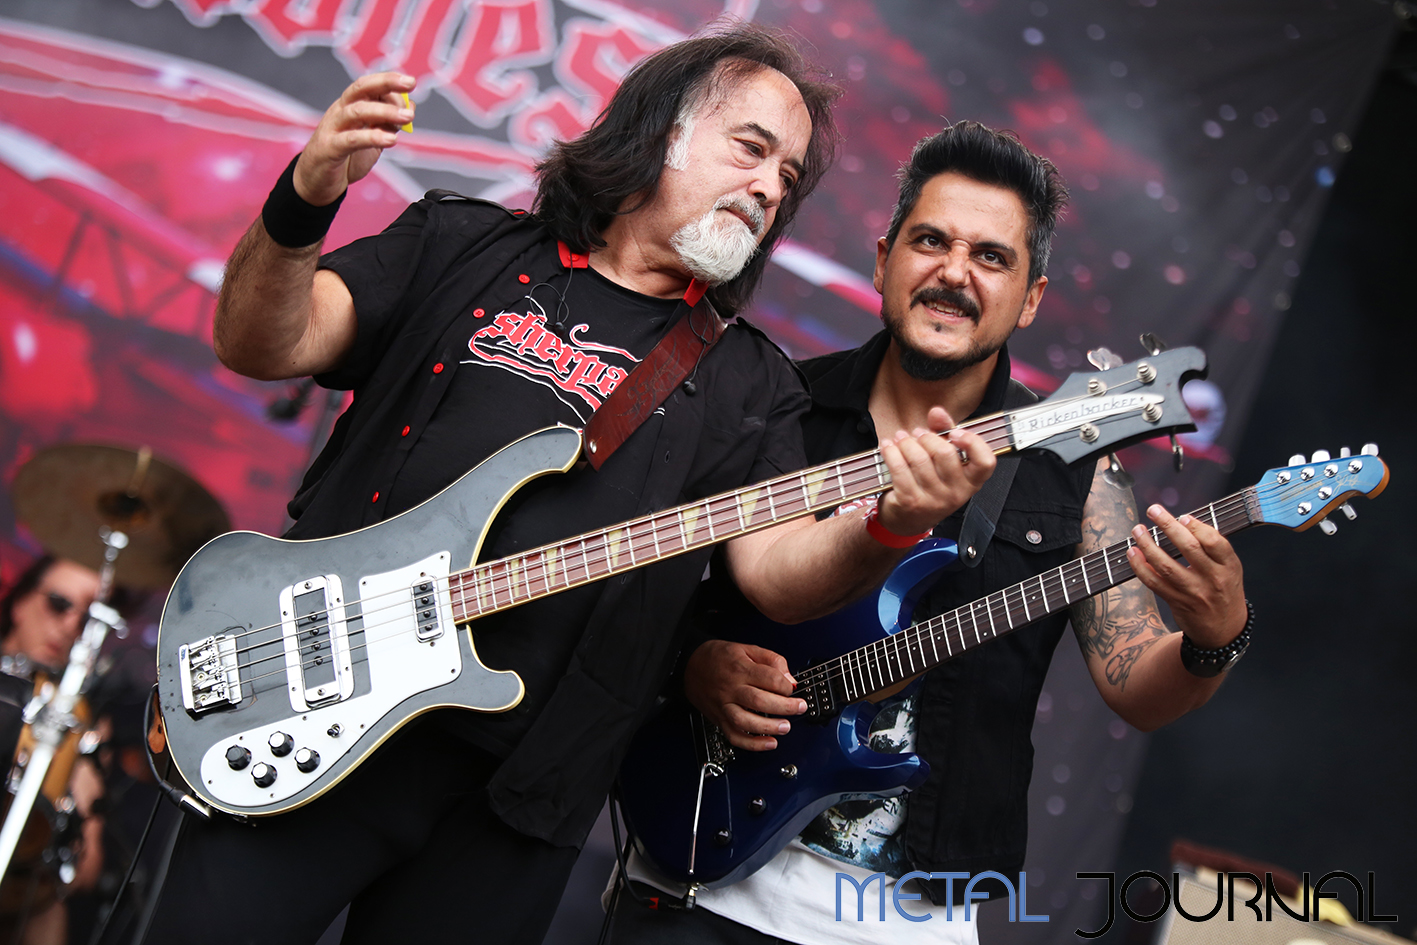 los barones - leyendas del rock 2019 metal journal pic 1